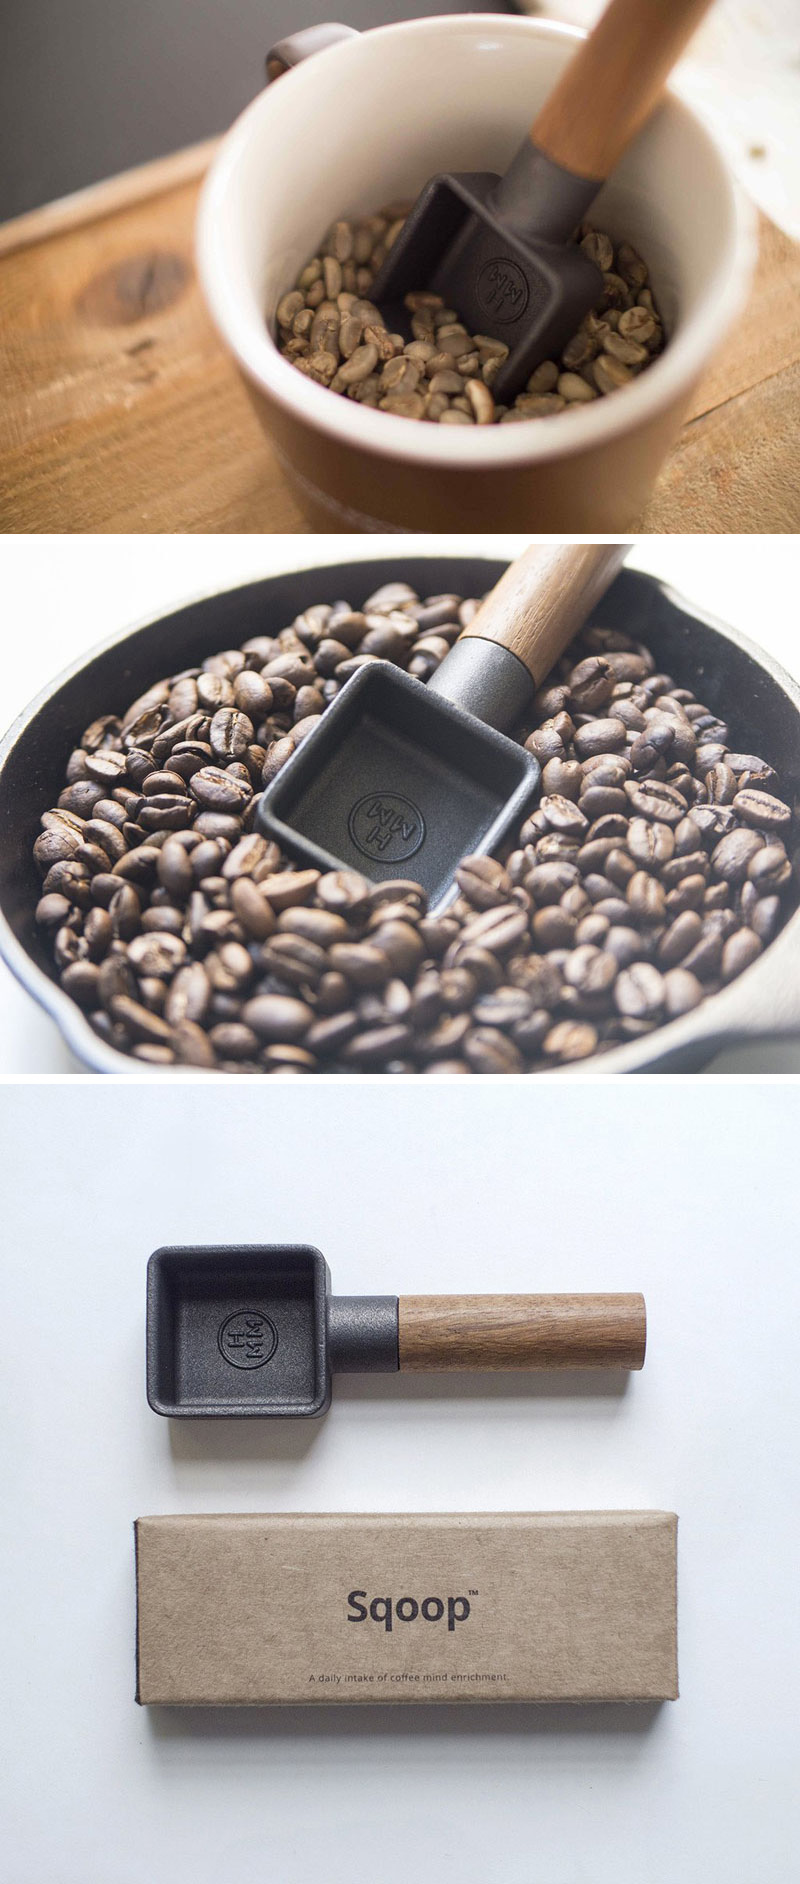 The Sqoop is a heavily weighted, cast iron and teak coffee scoop. Collecting beans for your morning coffee has never been so easy.